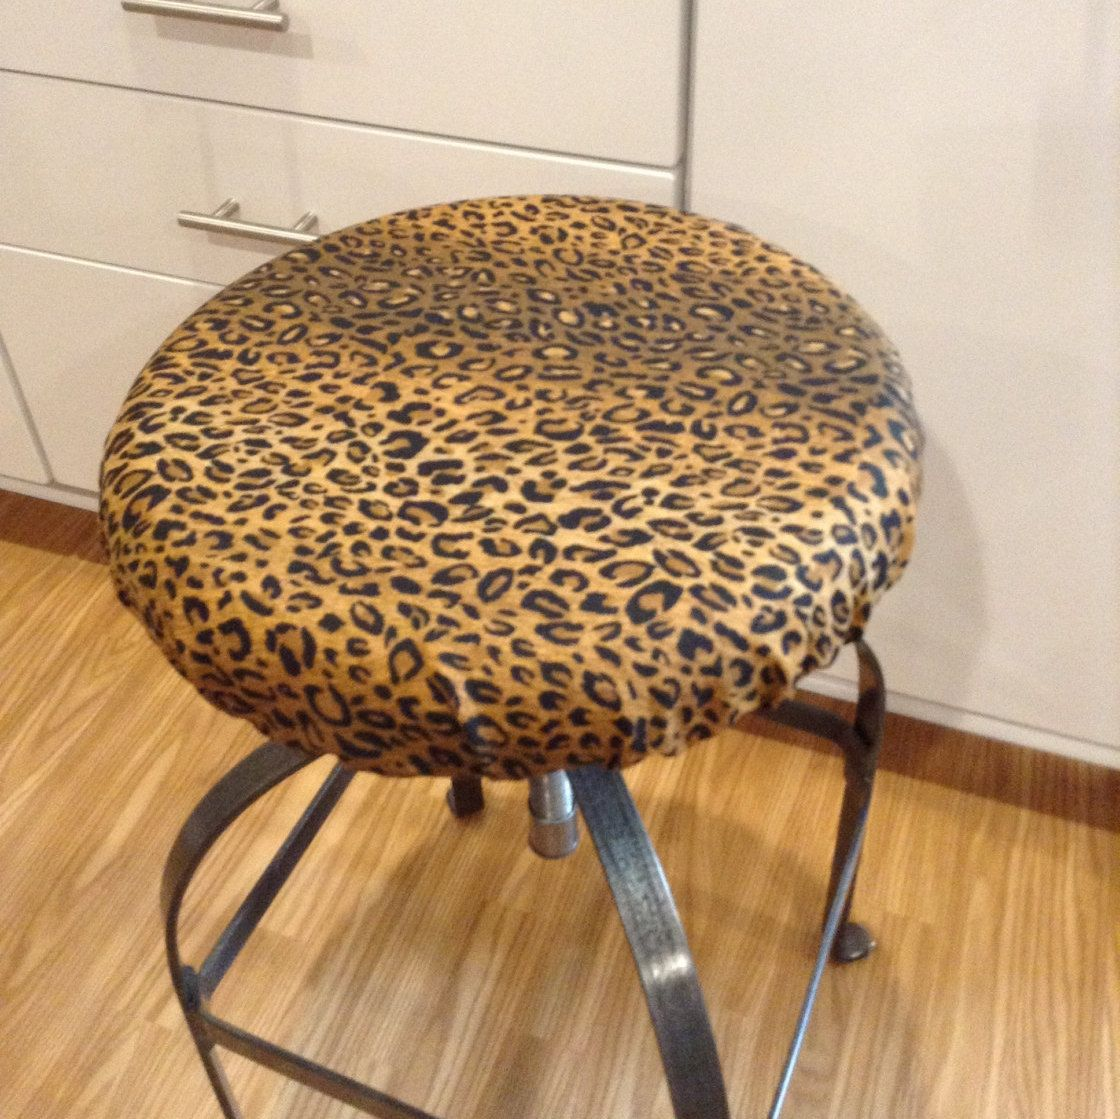 Elasticized Round Barstool Cover Counter Stool Leopard Print Brown With Balck Washable Cotton Fabric Kitchen Pad By Brittaleighdesigns